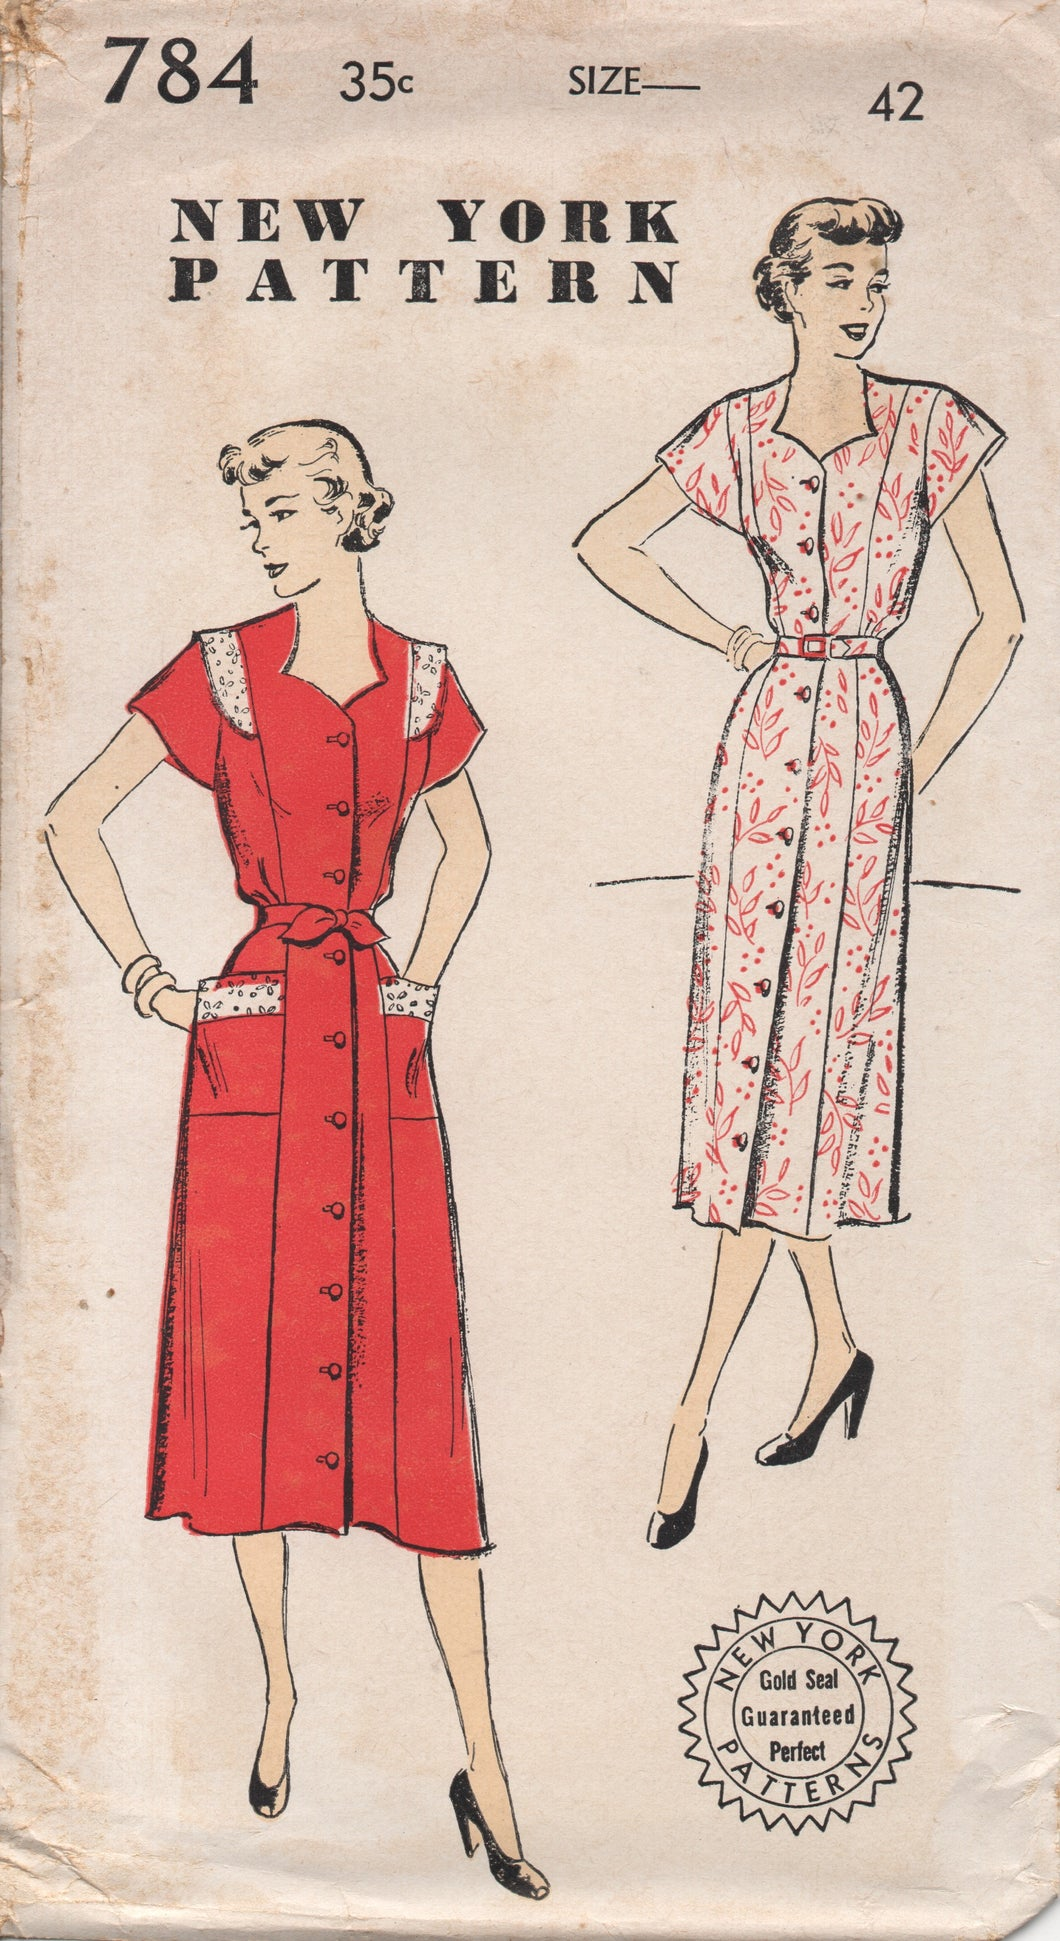 1950's New York One Piece Dress with Cut out Neckline and Pockets - Bust 42